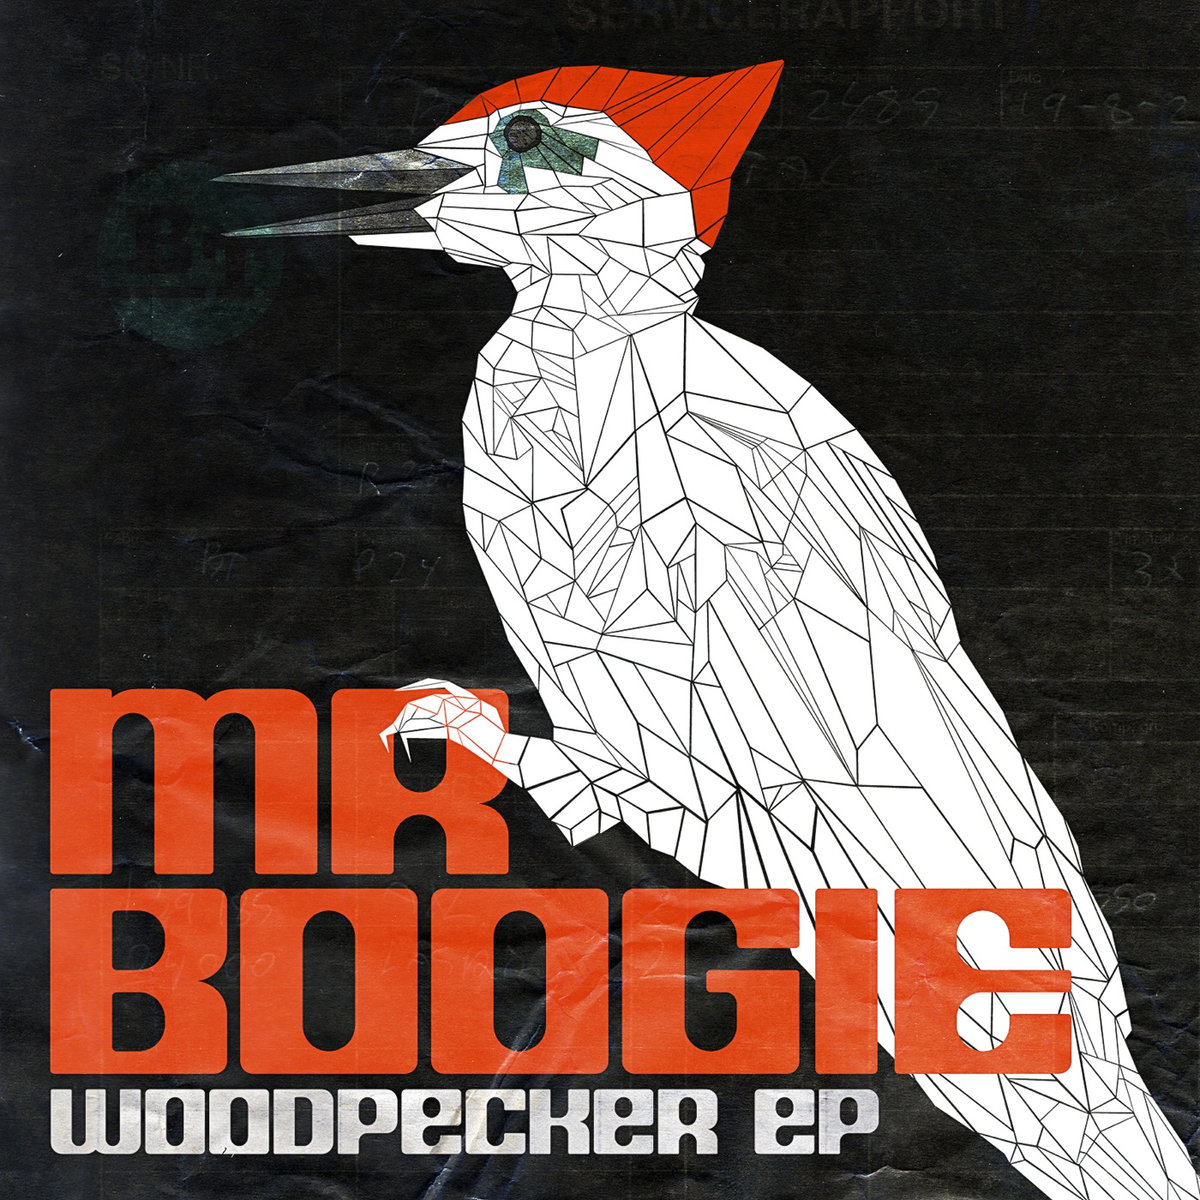 Mr. Boogie - Woodpecker (Zombie-J Remix) @ 'Woodpecker' album (electronic, dubstep)